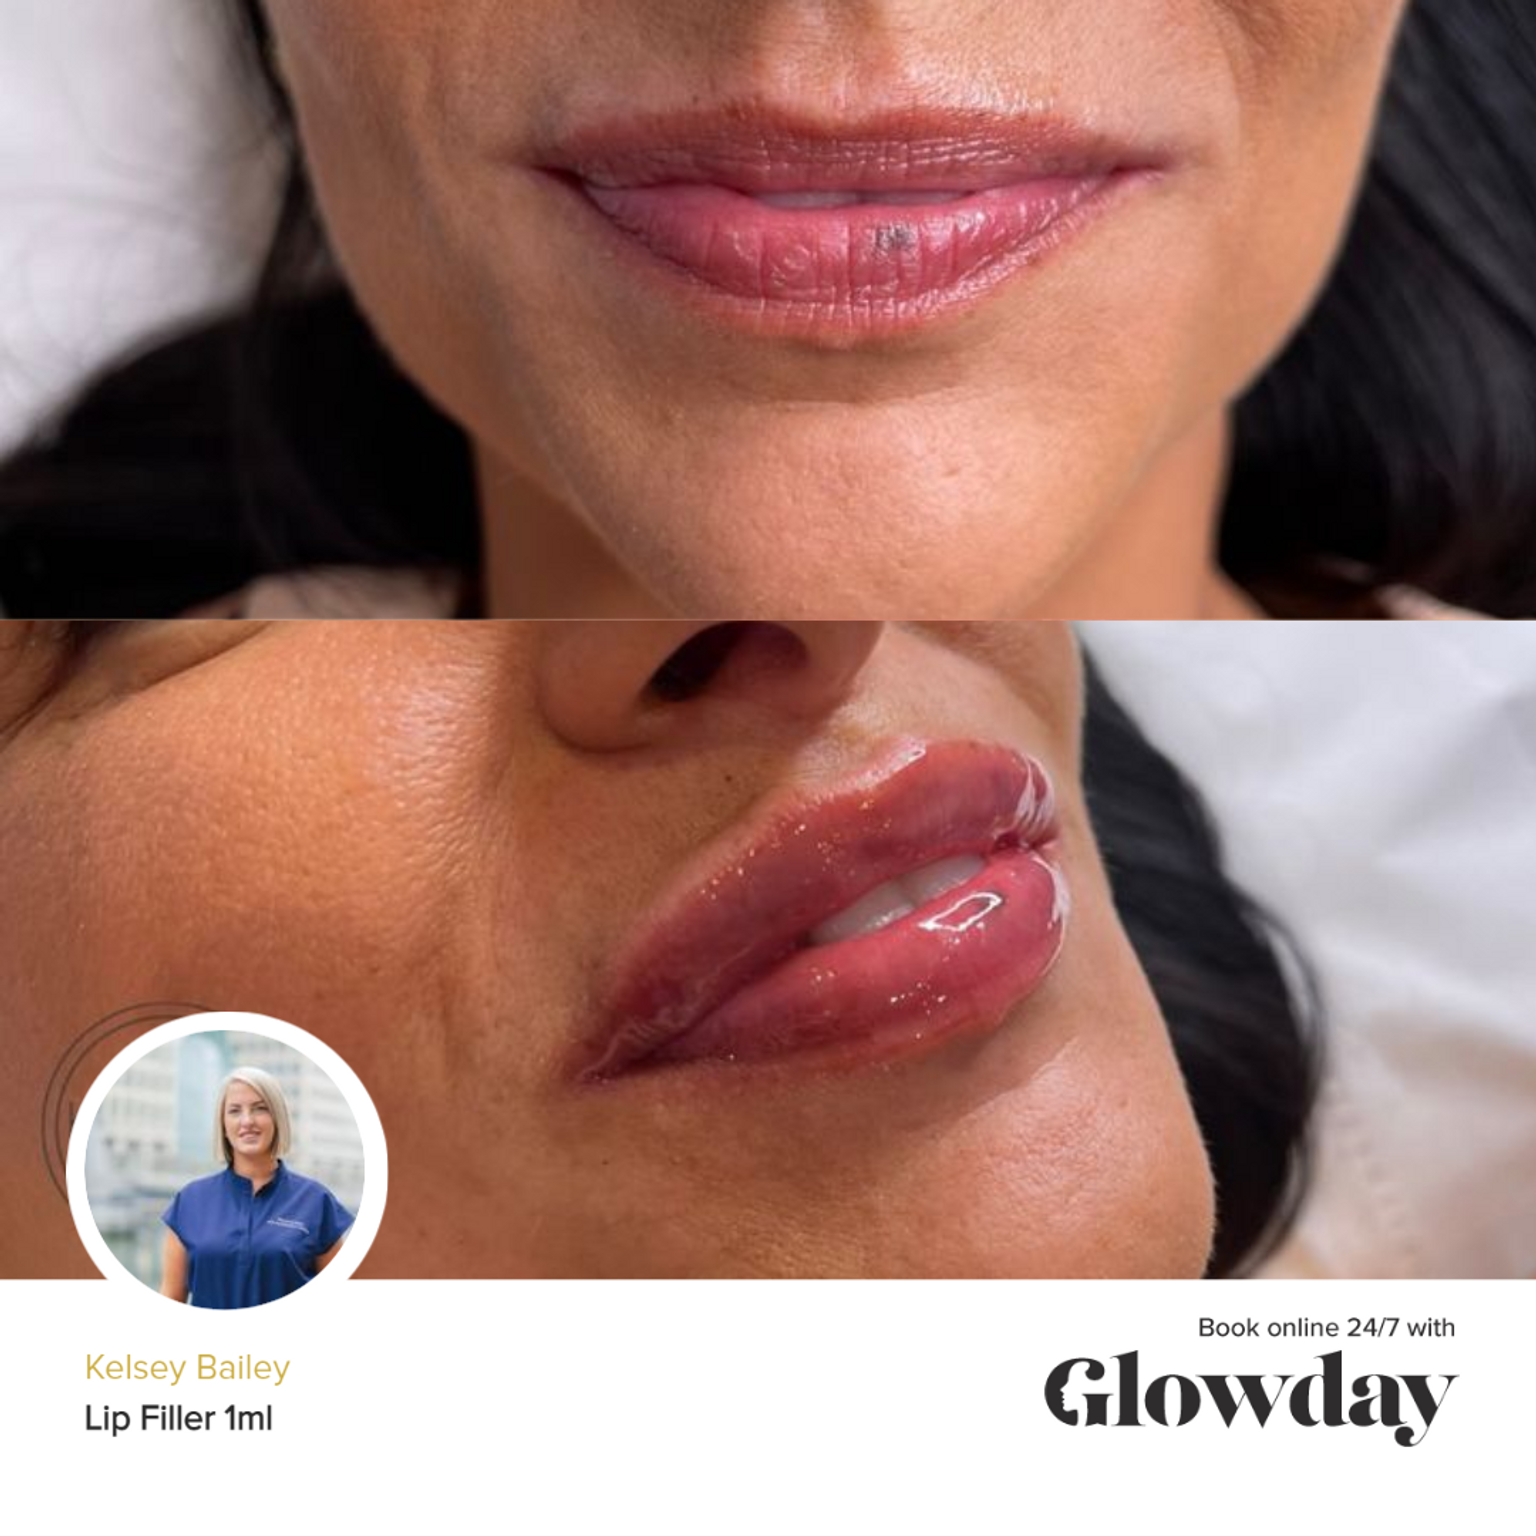 Kelsey Bailey Before and After Lip Fillers - Glowday